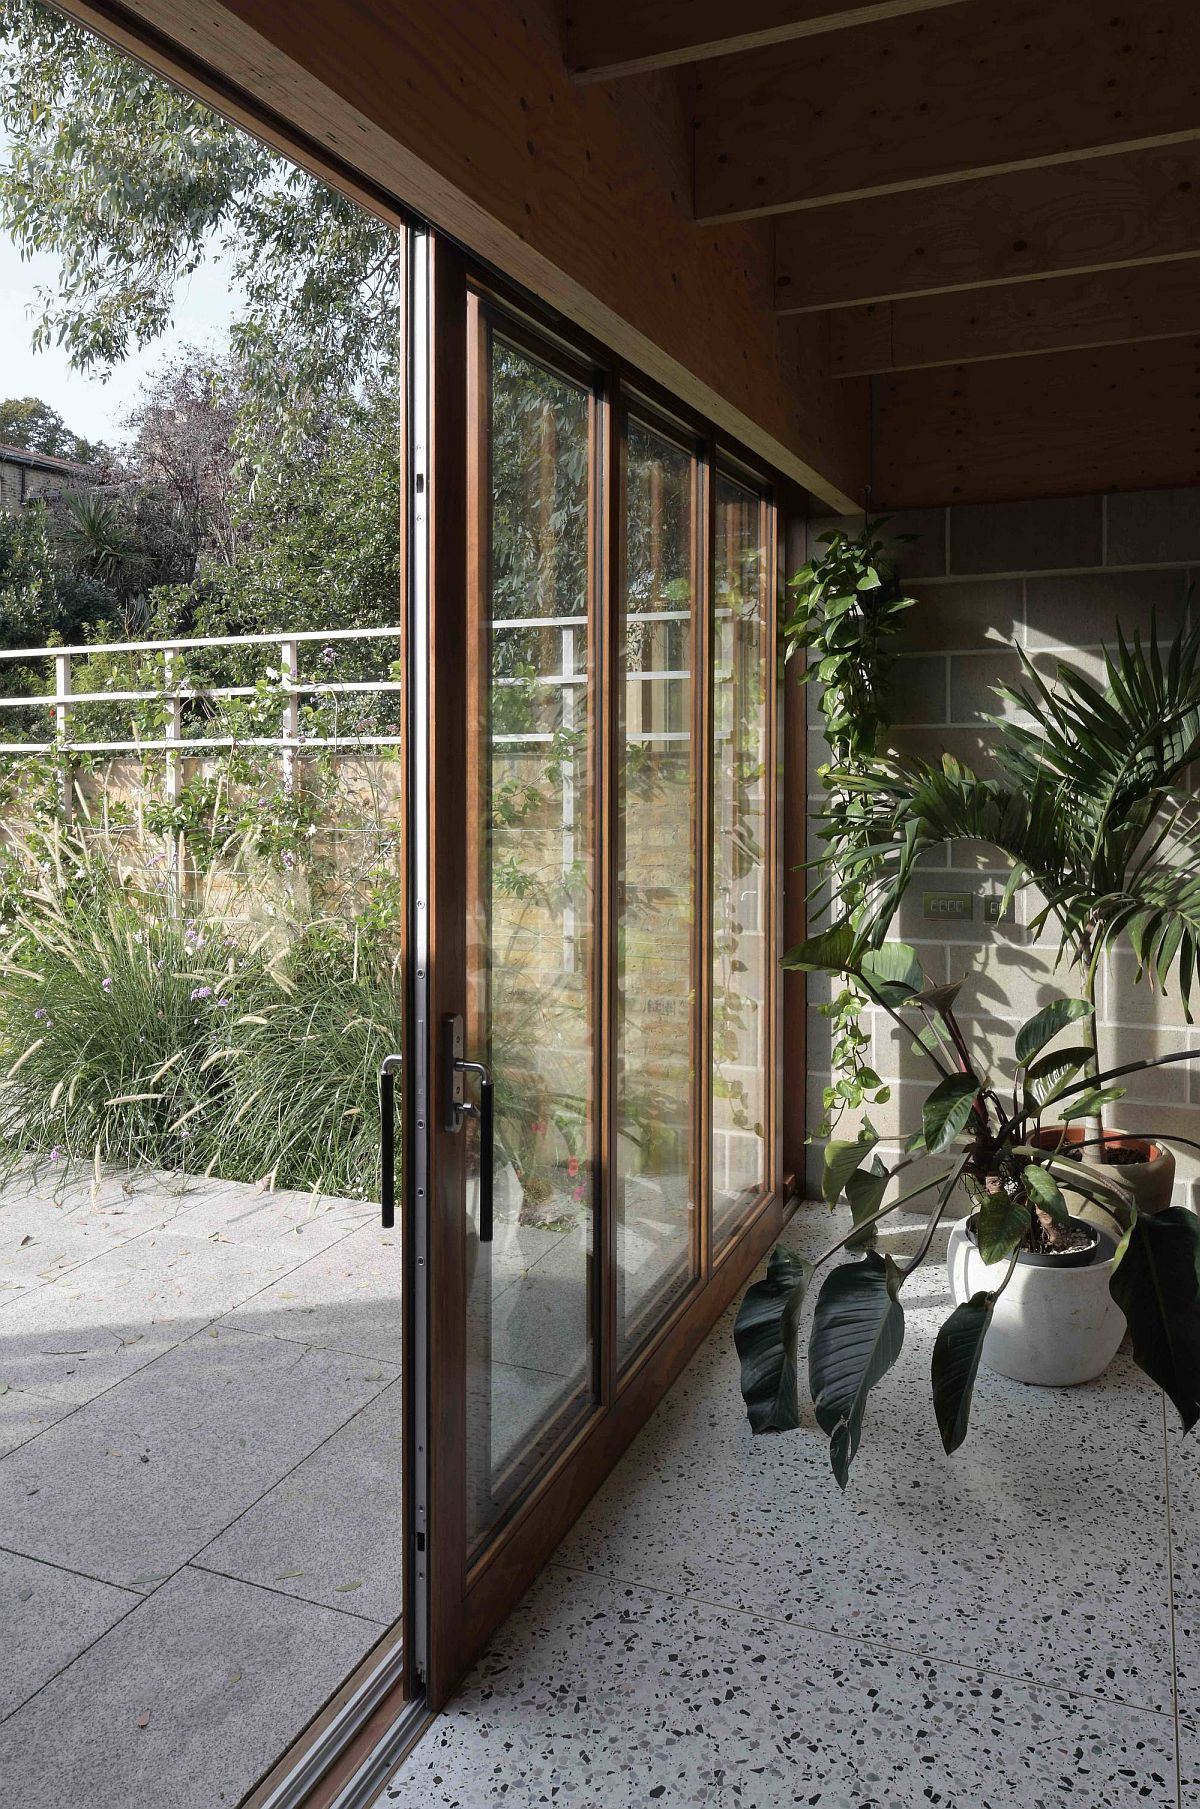 Sliding glass doors connect the interior with the garden outside